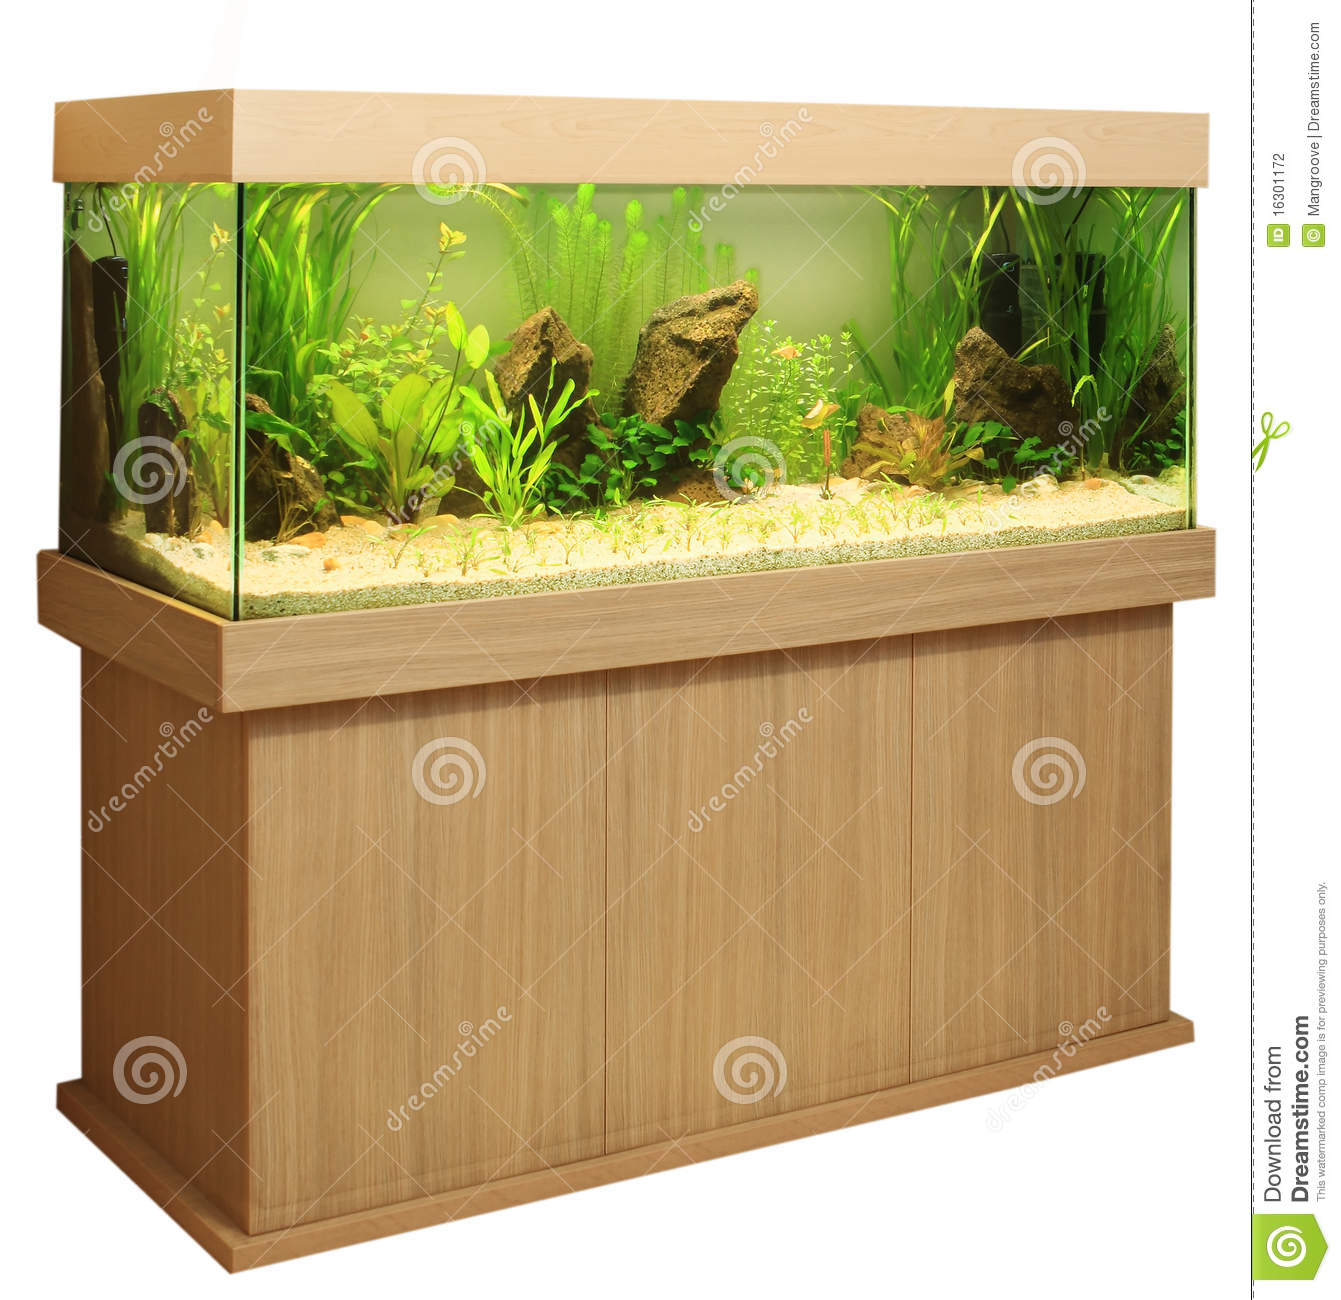 Home Aquarium Stock Photo Image Of Bowl Aquatic